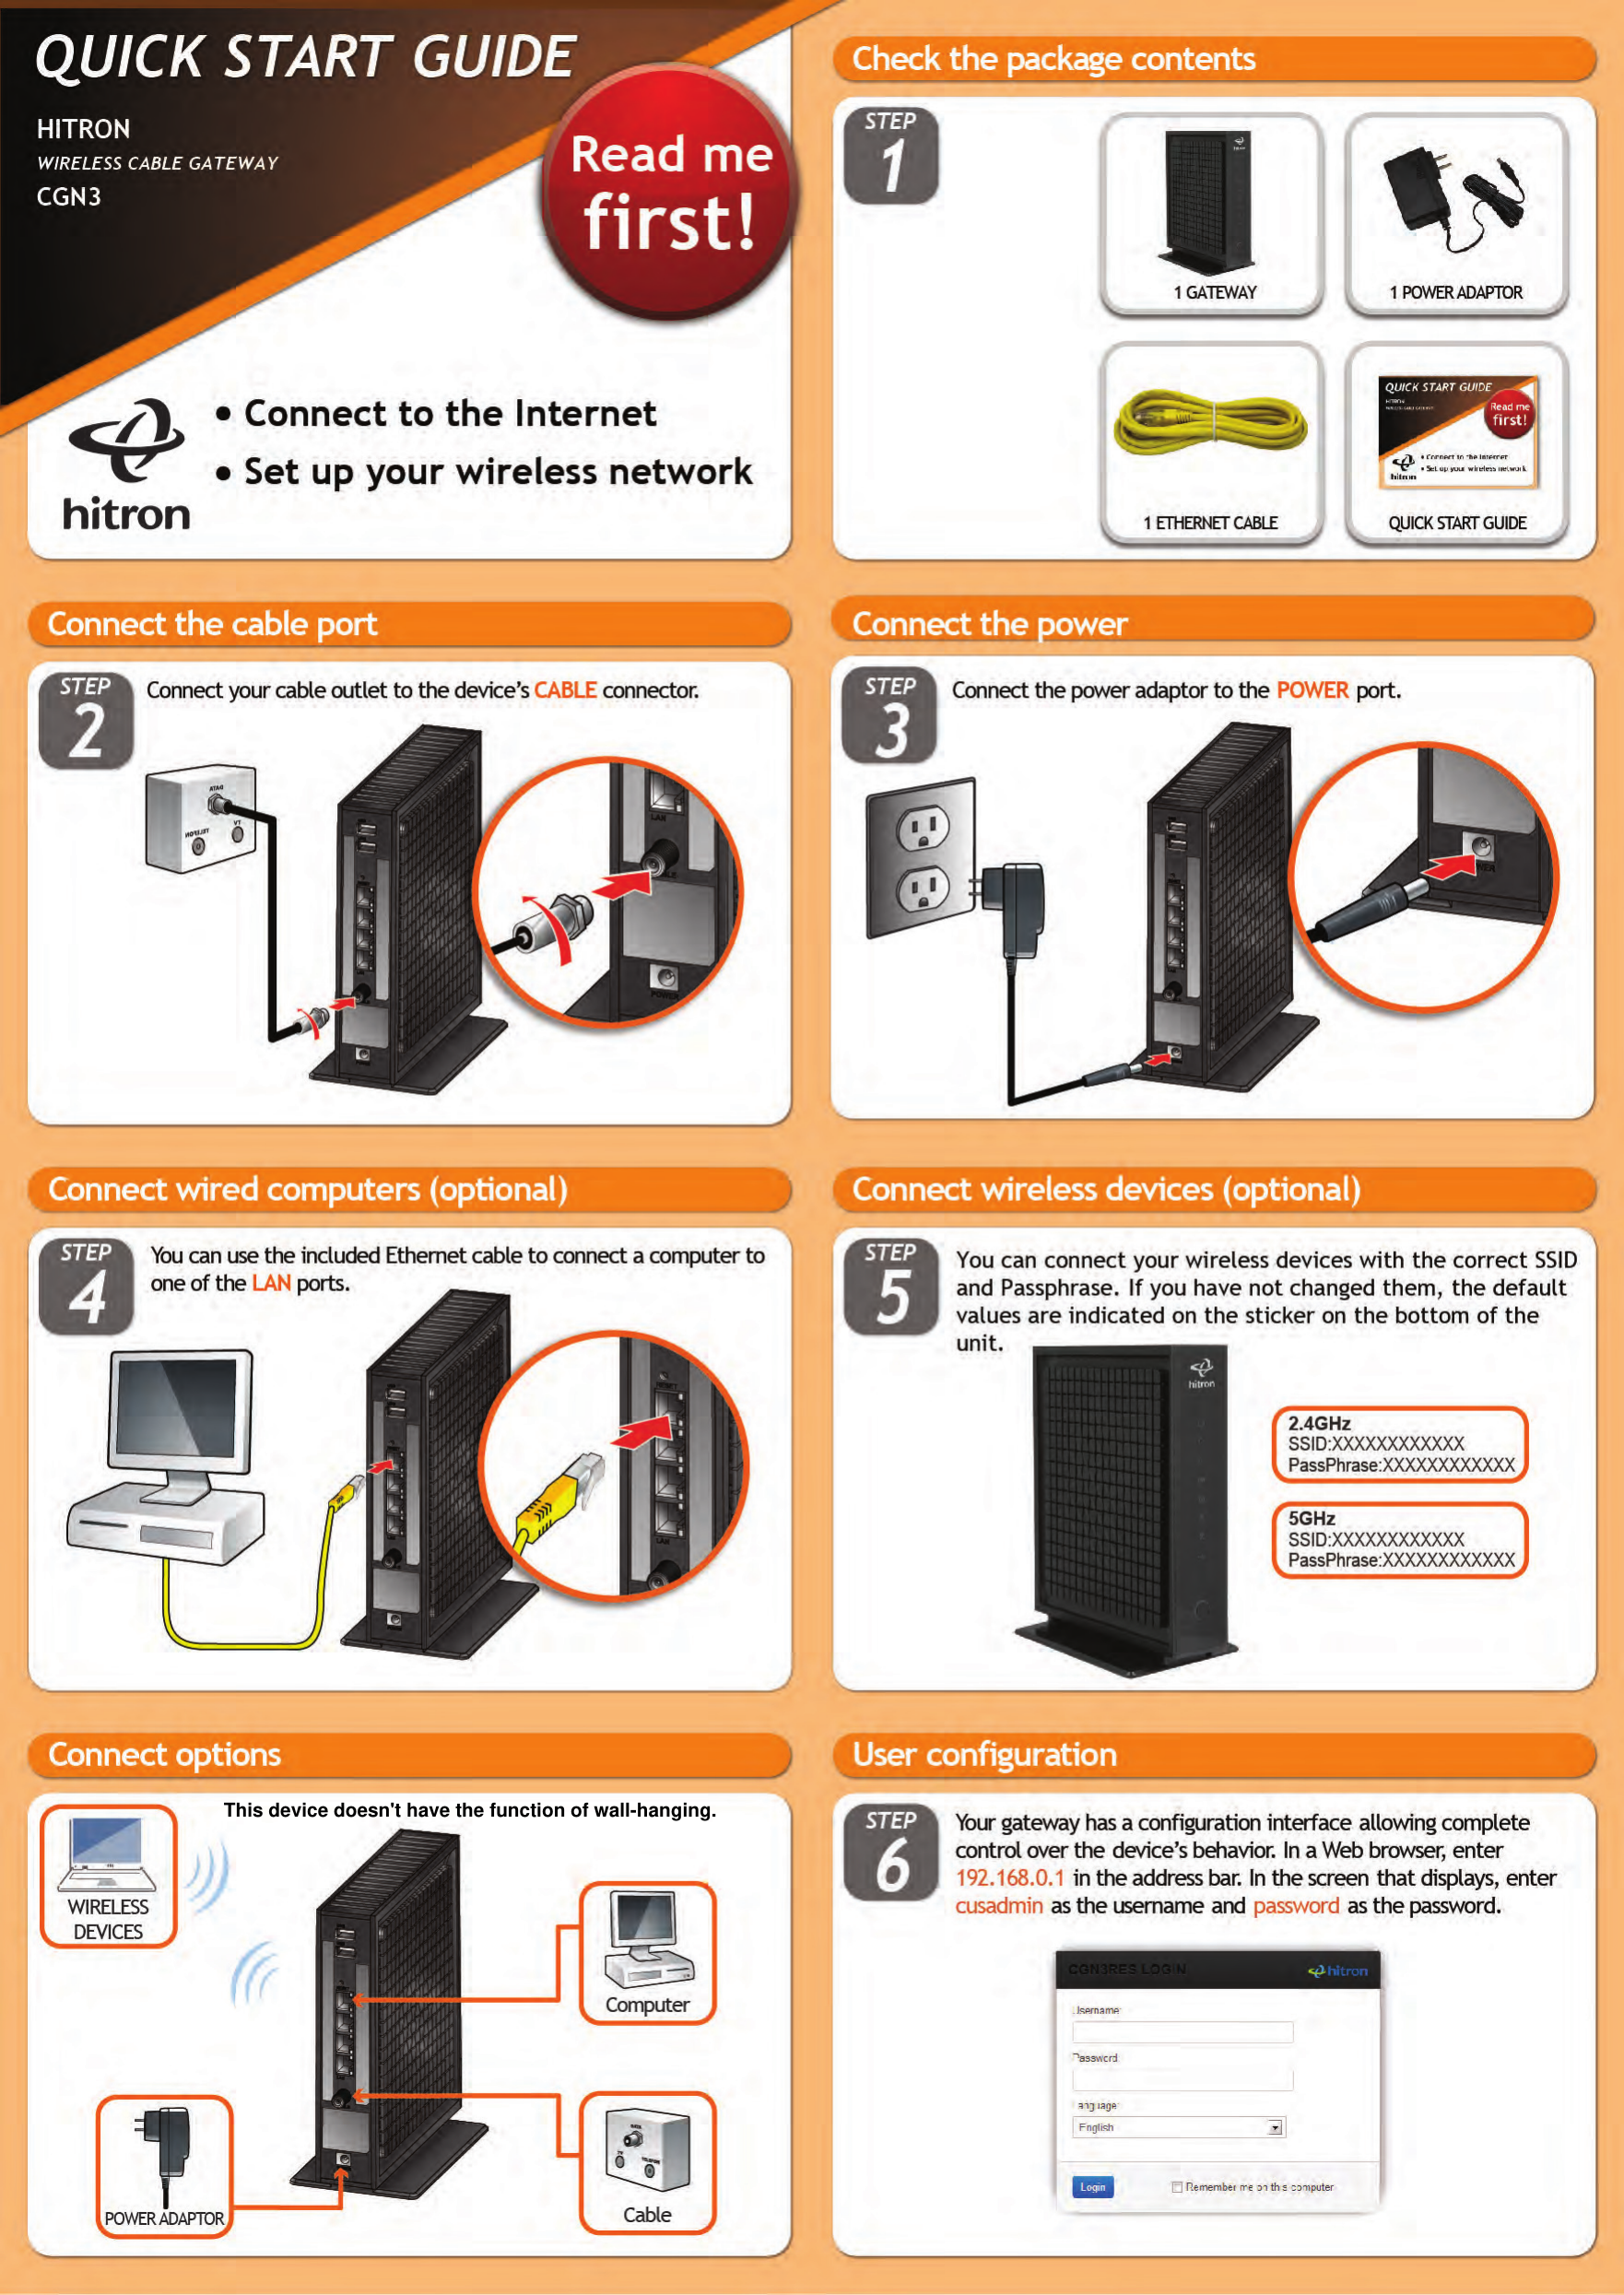 Hitron clipart tv guide picture library CGN31A CGN3 D3 WiFi Gateway User Manual Hitron TECHNOLOGIES picture library